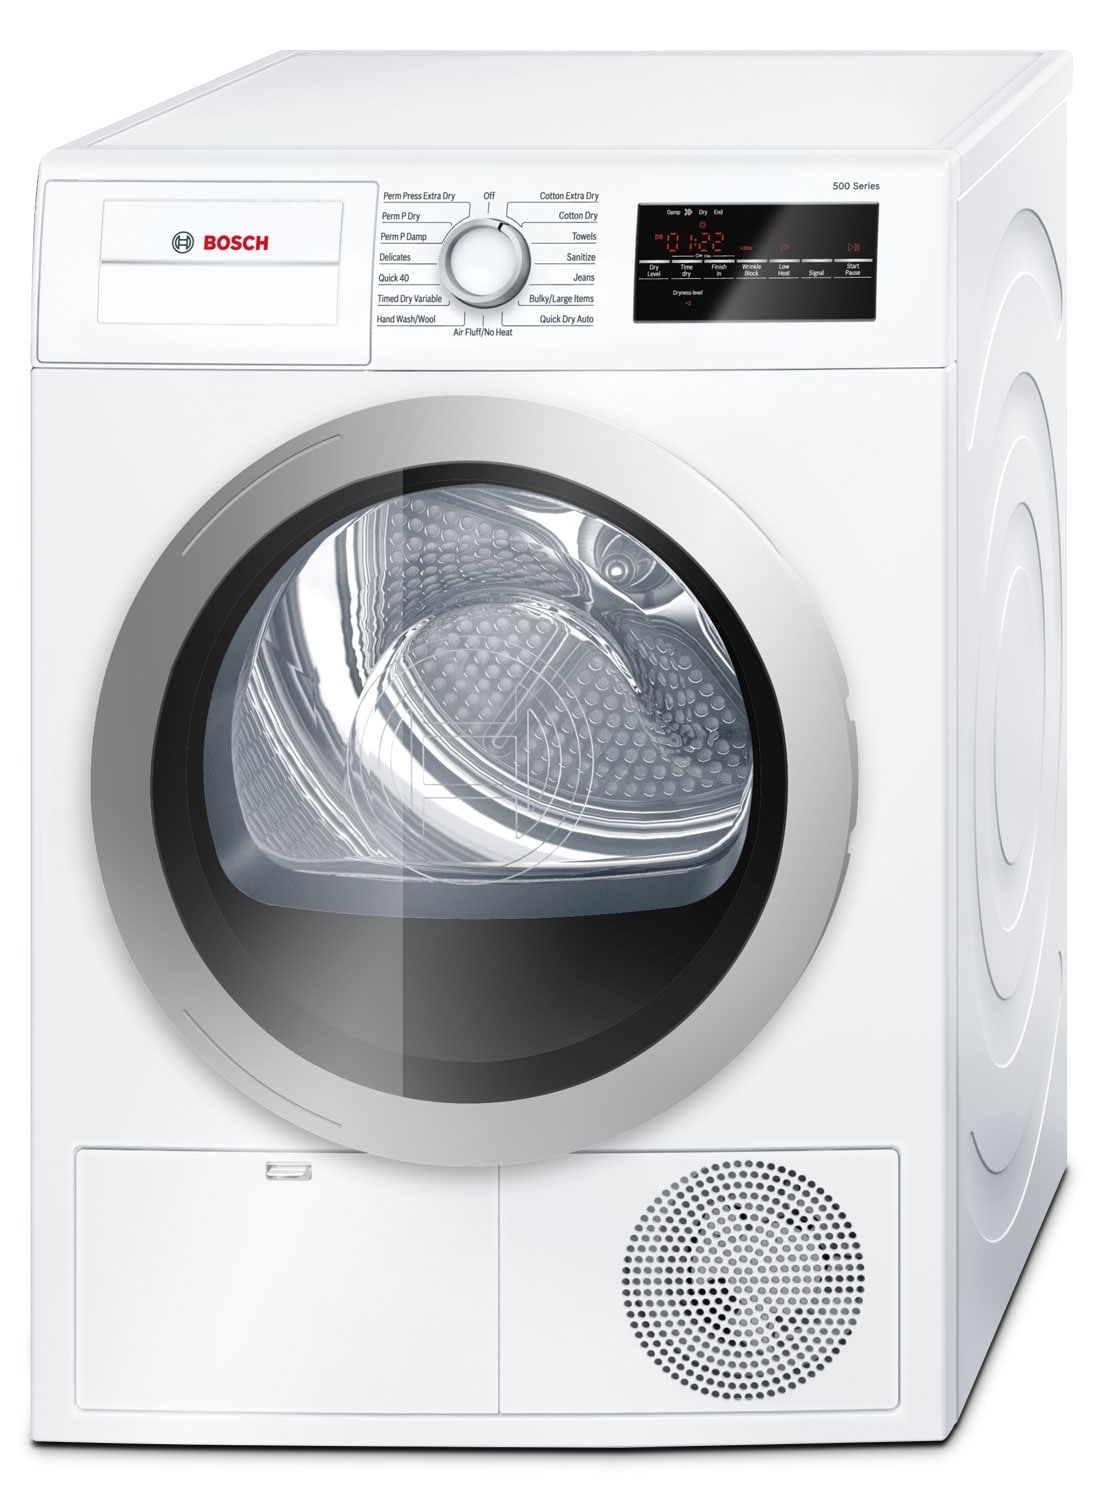 Washers and Dryers - Bosch White and Silver Electric Dryer (4 Cu. Ft.) - WTG86401UC